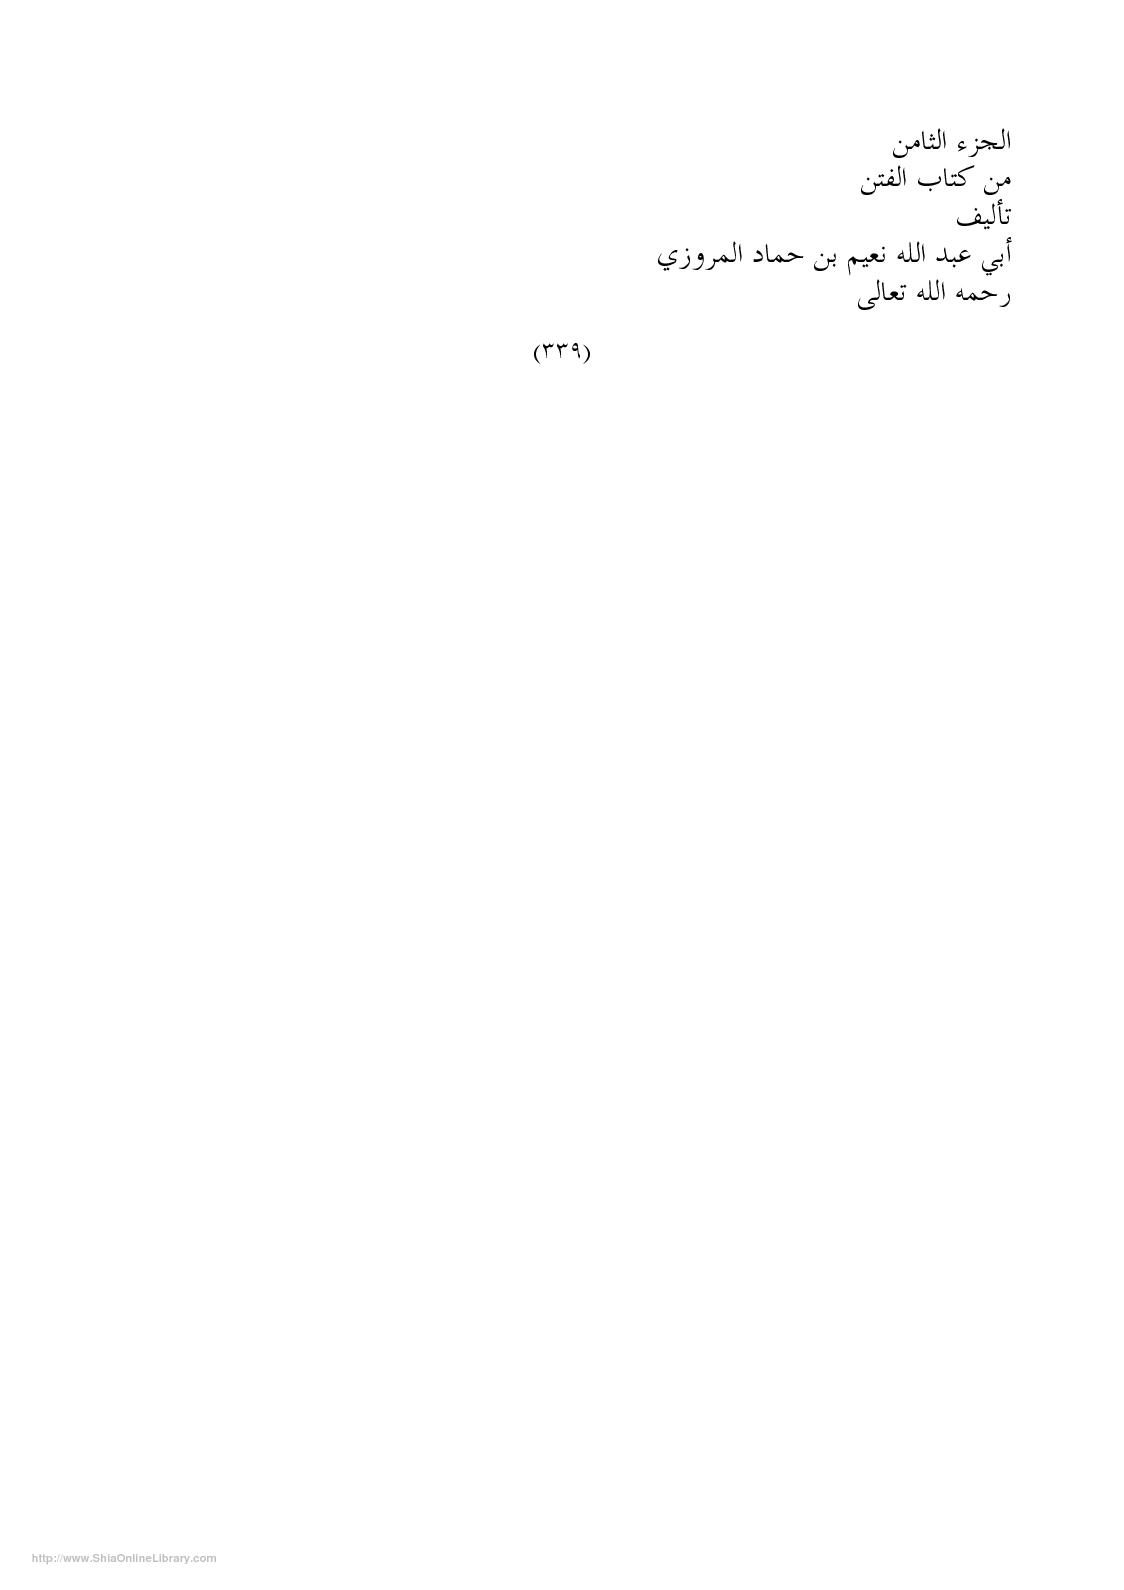 Page 335